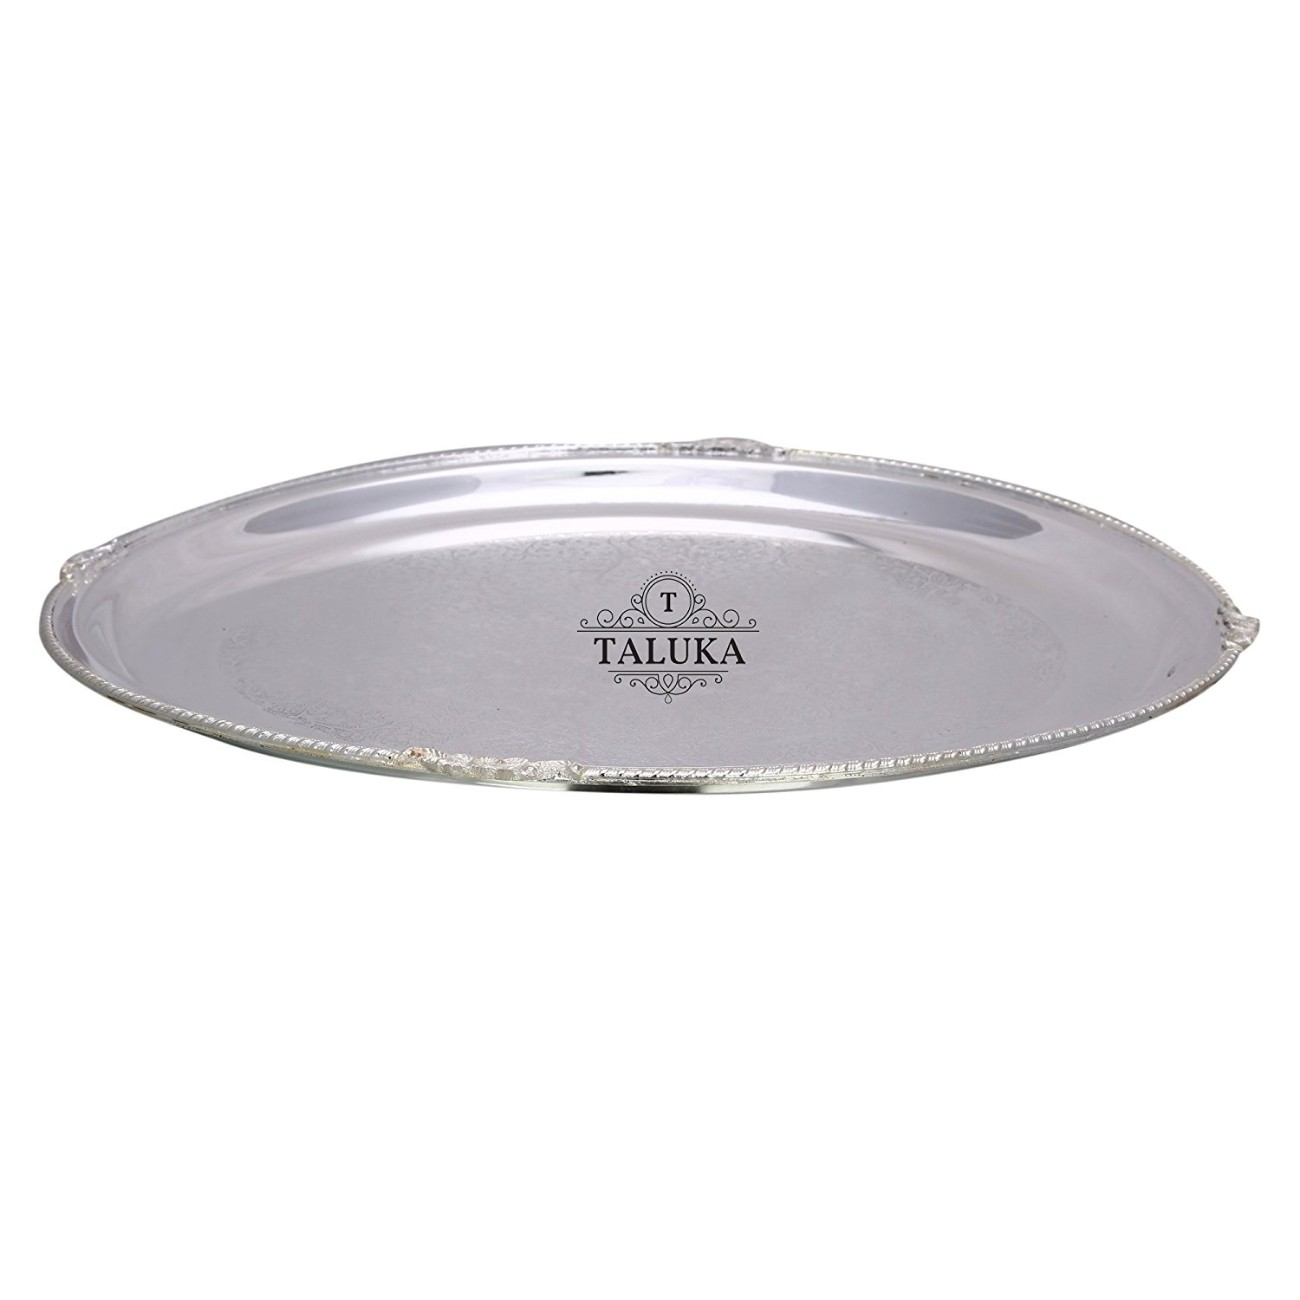 Brass Nickel Plated Tray Serving Tray/Plate / Charger Round Shape Elegant